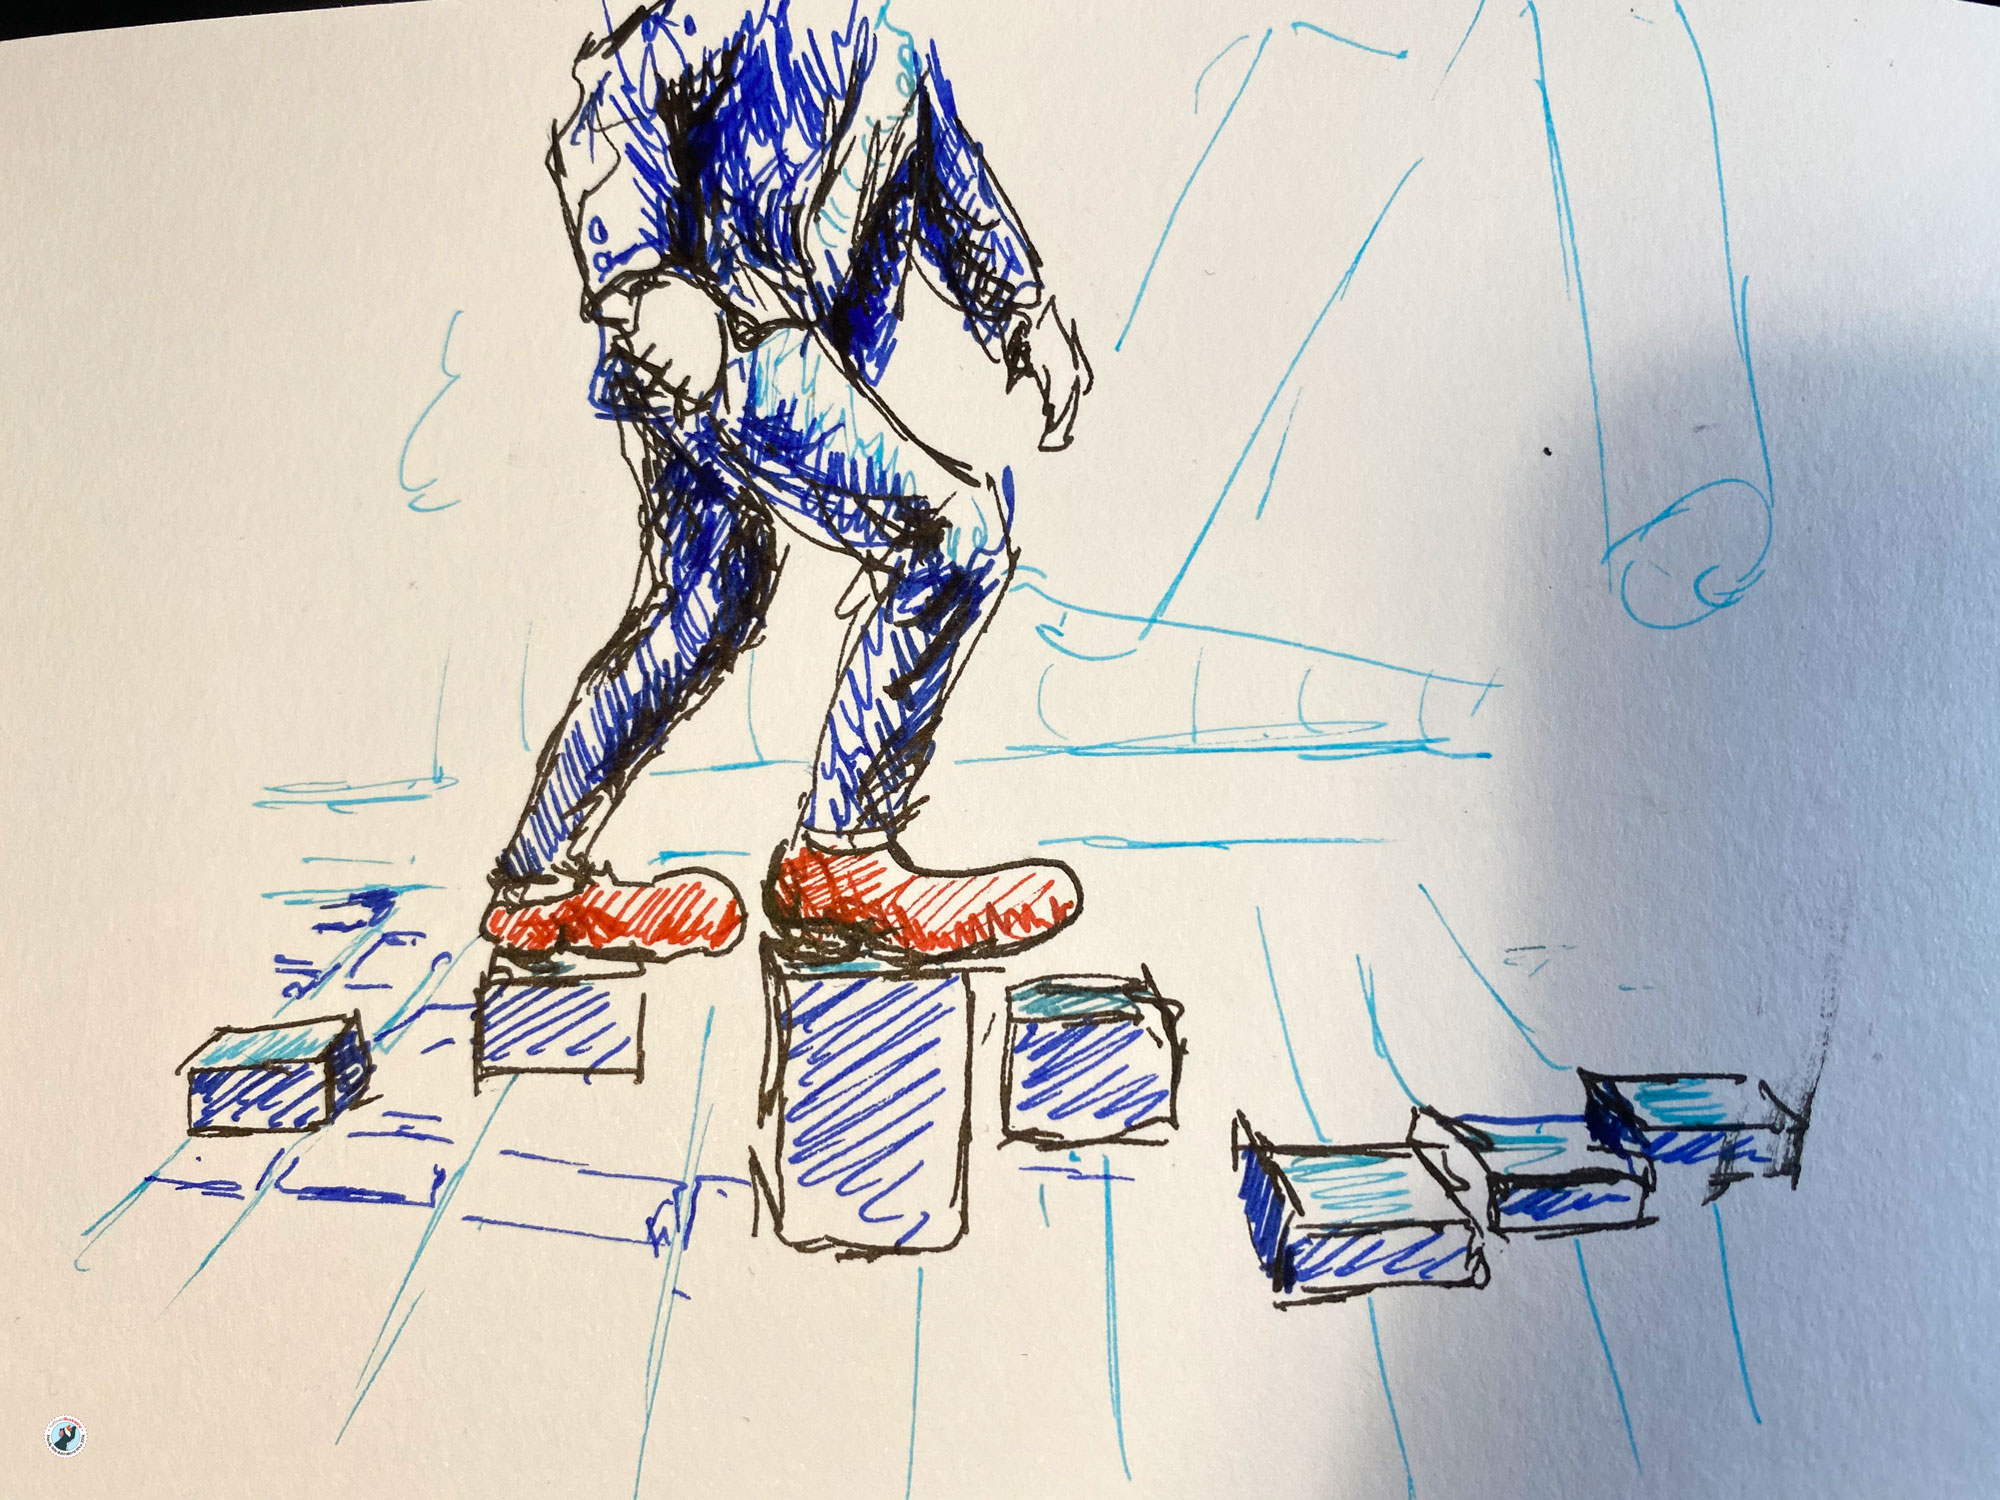 This rough coloured sketch shows a person walking a parcour in clown's shoes at the experimenta